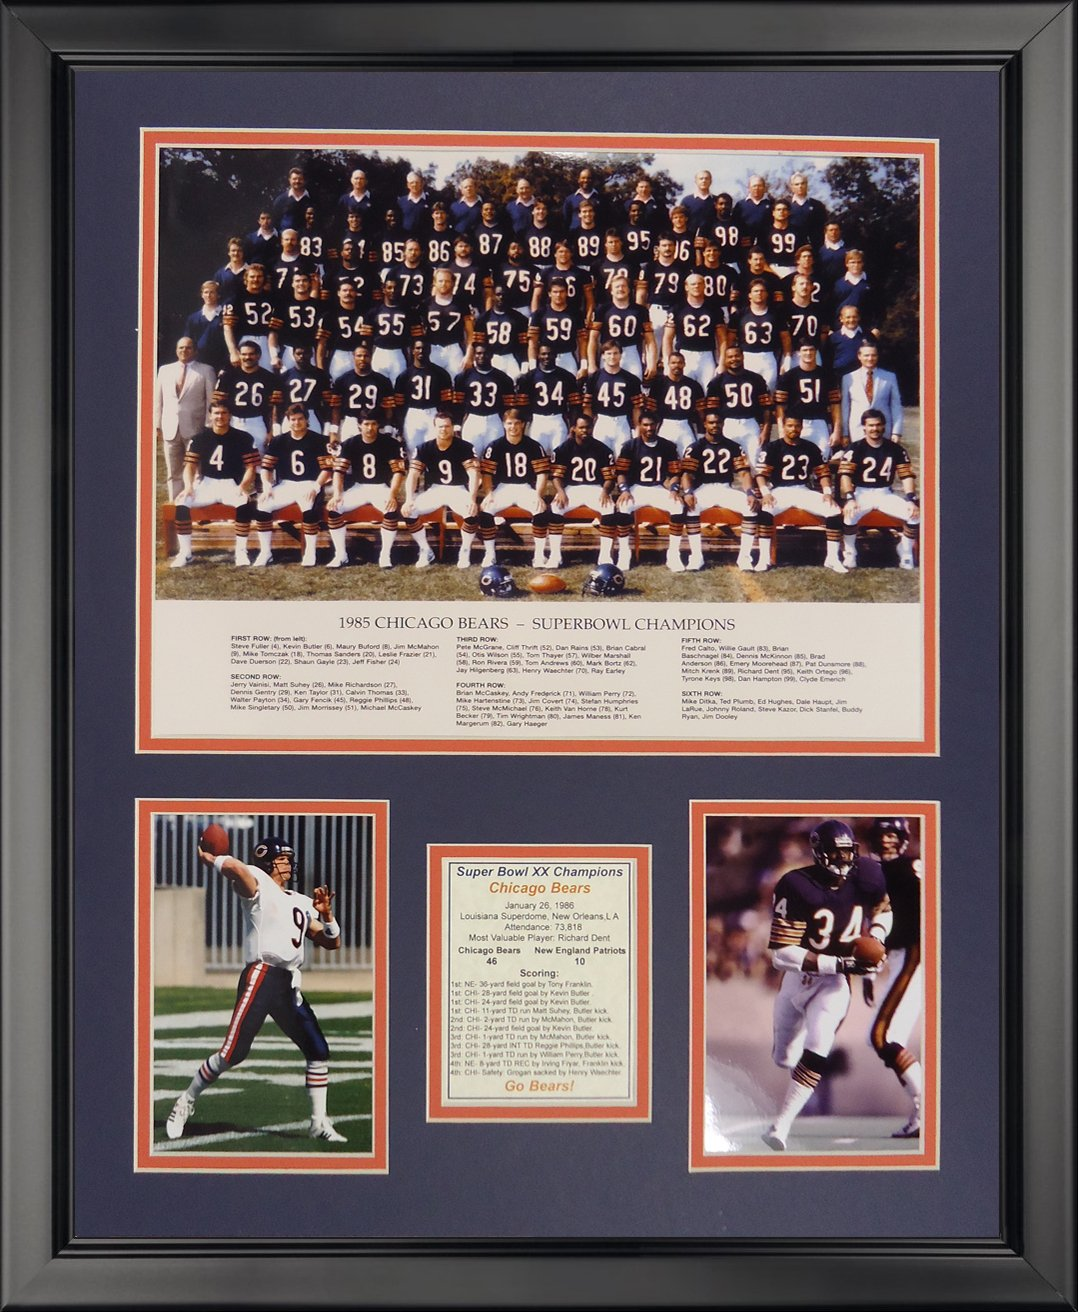 Legends Never Die Chicago Bears - 1985 Bears Framed Photo Collage, 16'' x 20''